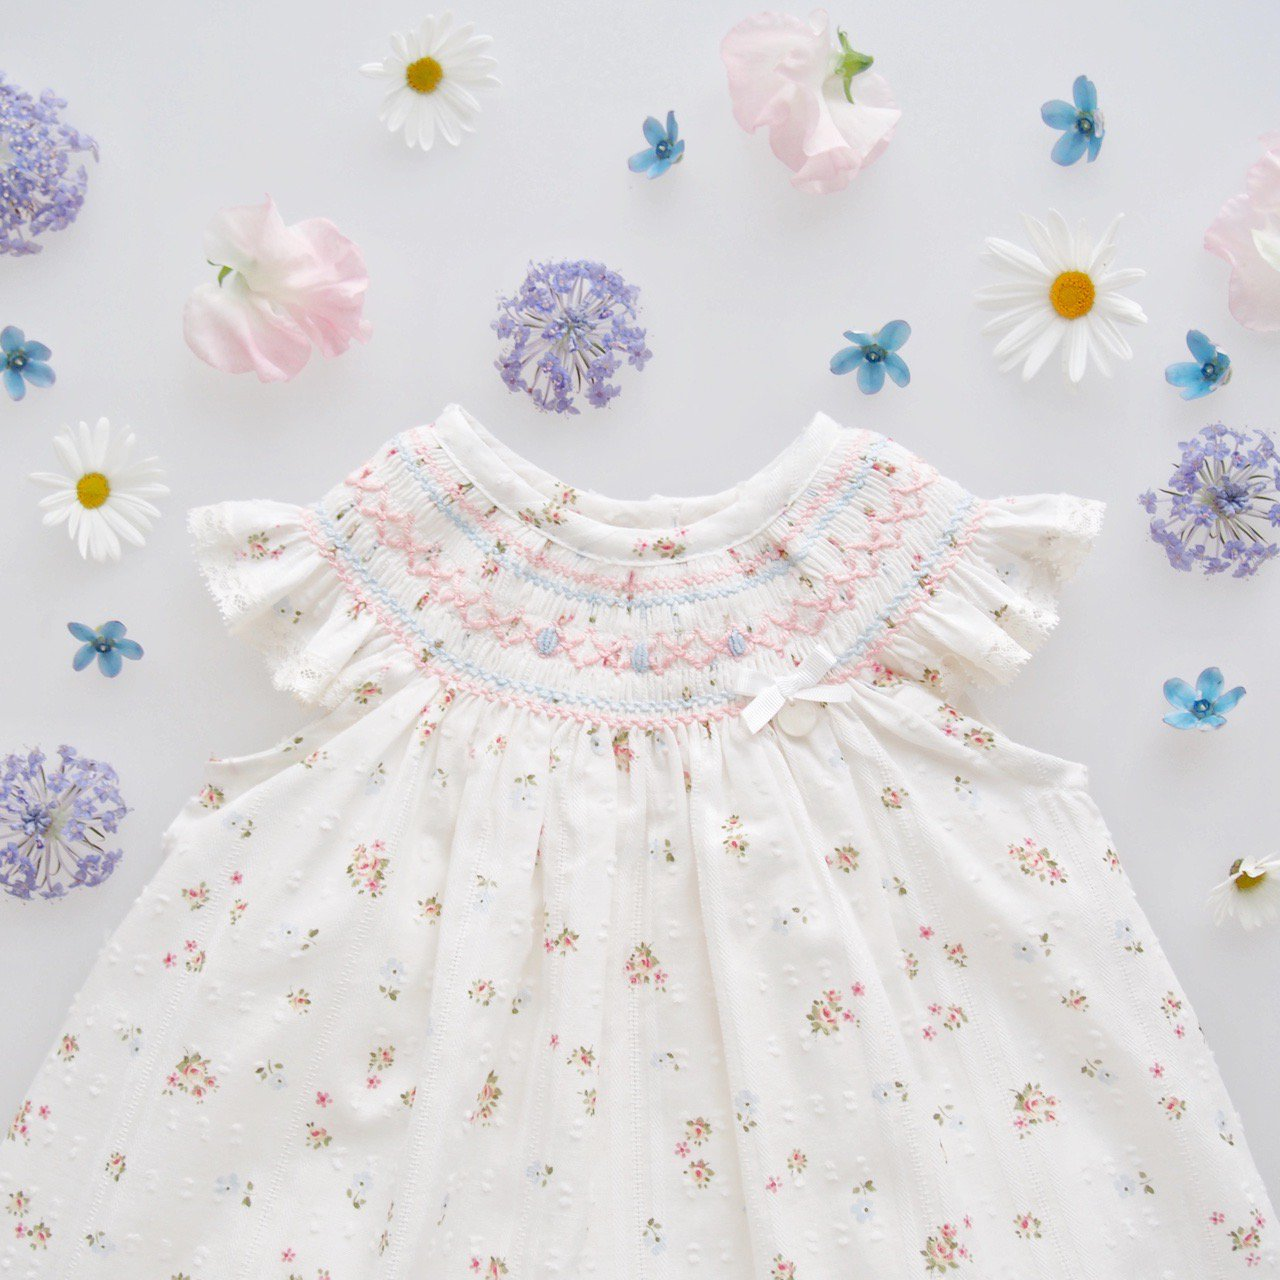 <img class='new_mark_img1' src='https://img.shop-pro.jp/img/new/icons1.gif' style='border:none;display:inline;margin:0px;padding:0px;width:auto;' />baby lai/ Laivicar - Plumetti floral bishop set